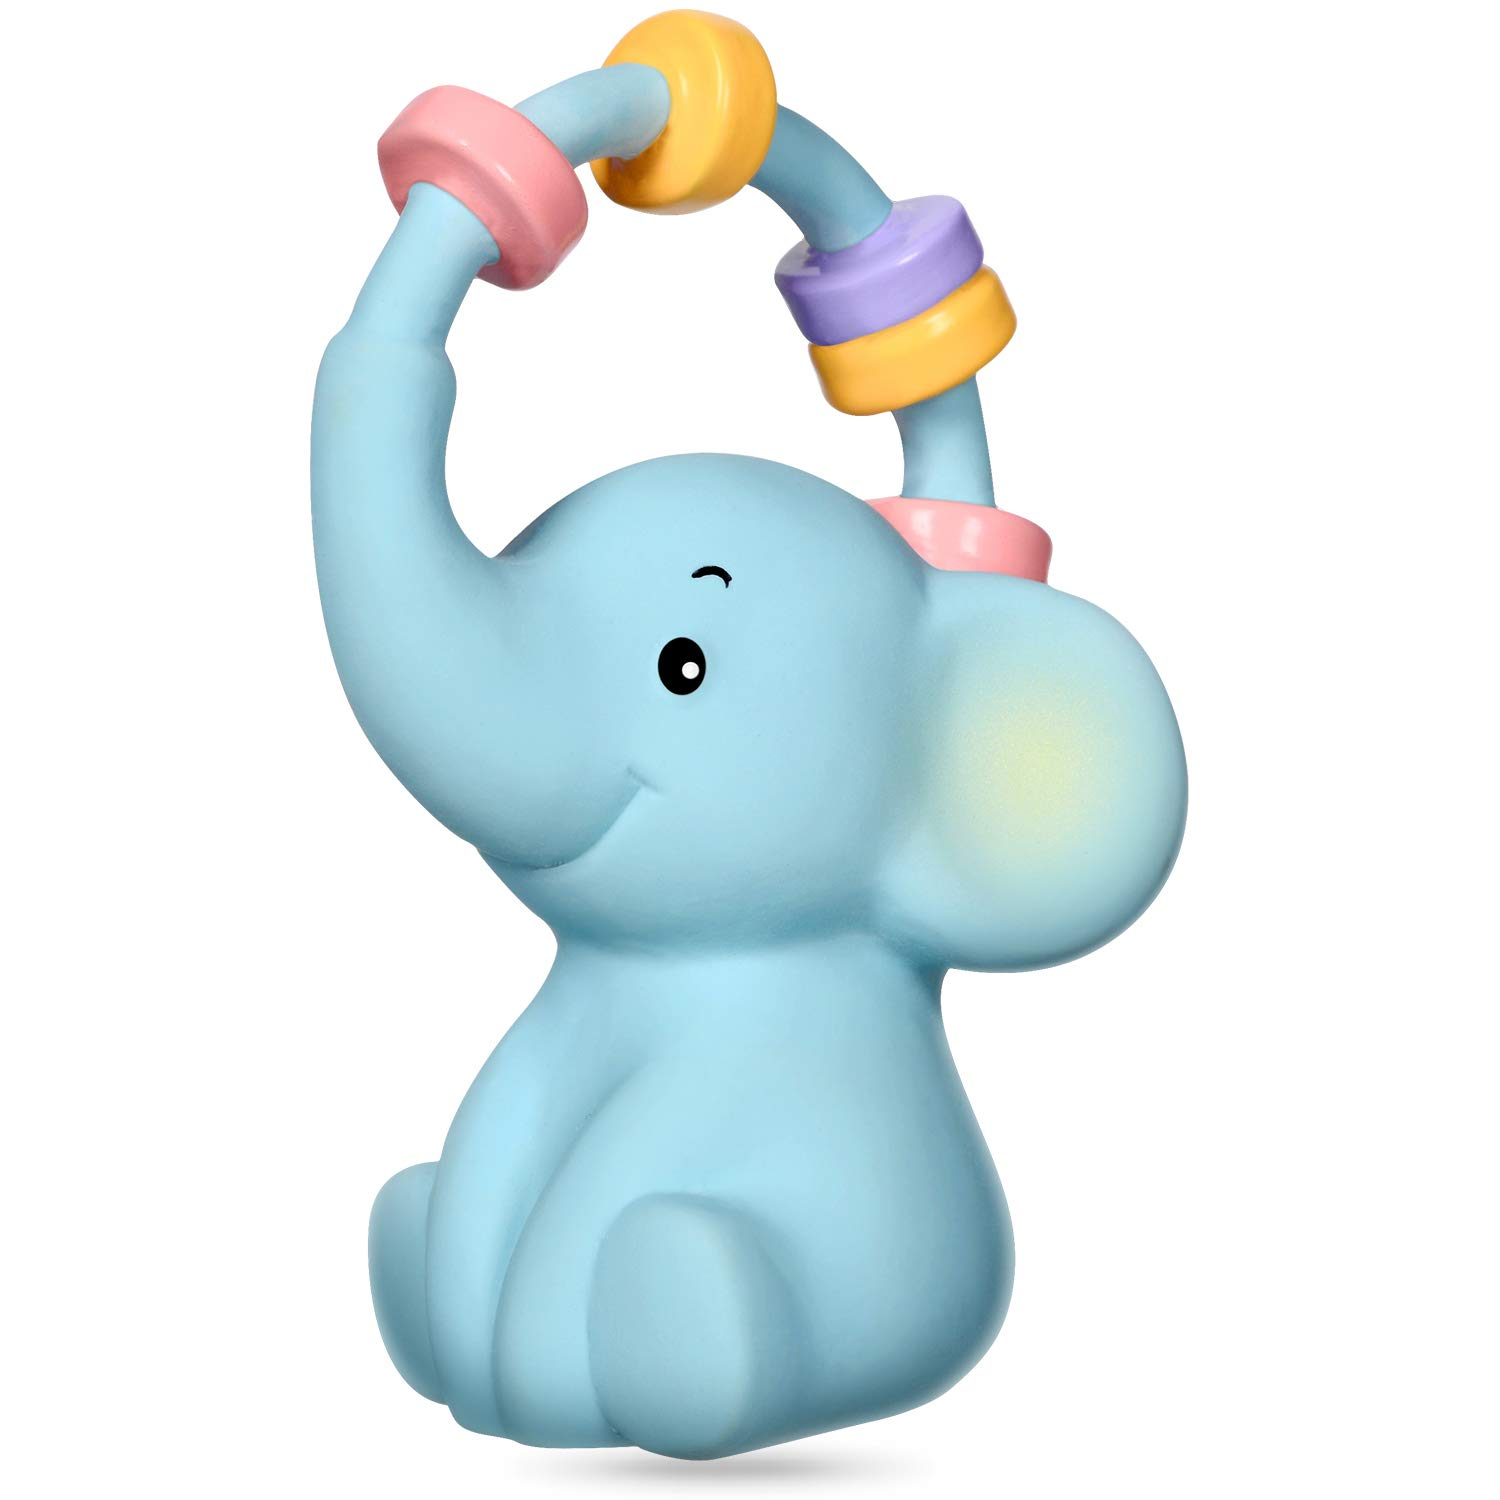 CALLMYBO Lovely Elephant Teether, Silicon Free Teething Toy 100% Natural Rubber Teether Multi-Textured Soft & Soothing Easy-Hold, Lovely Baby Teether Gift (BPA Free, Freezer & Dishwasher Safe).